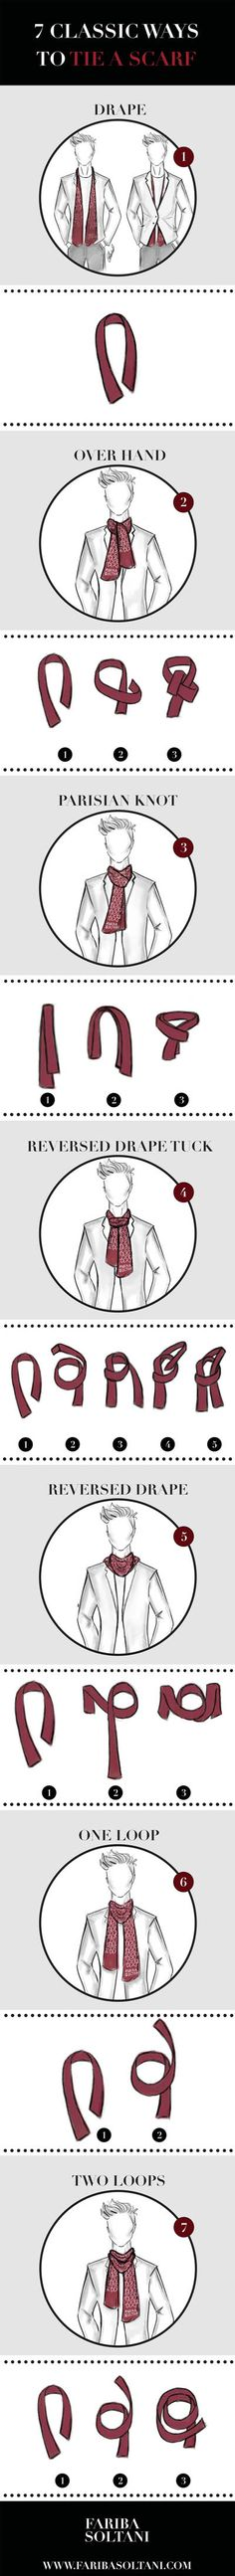 This infographic is aimed to answer the question we received from many people as how to tie a scarf. We decided to create an infographic to show step by step how to style your scarf in 7 different ways.